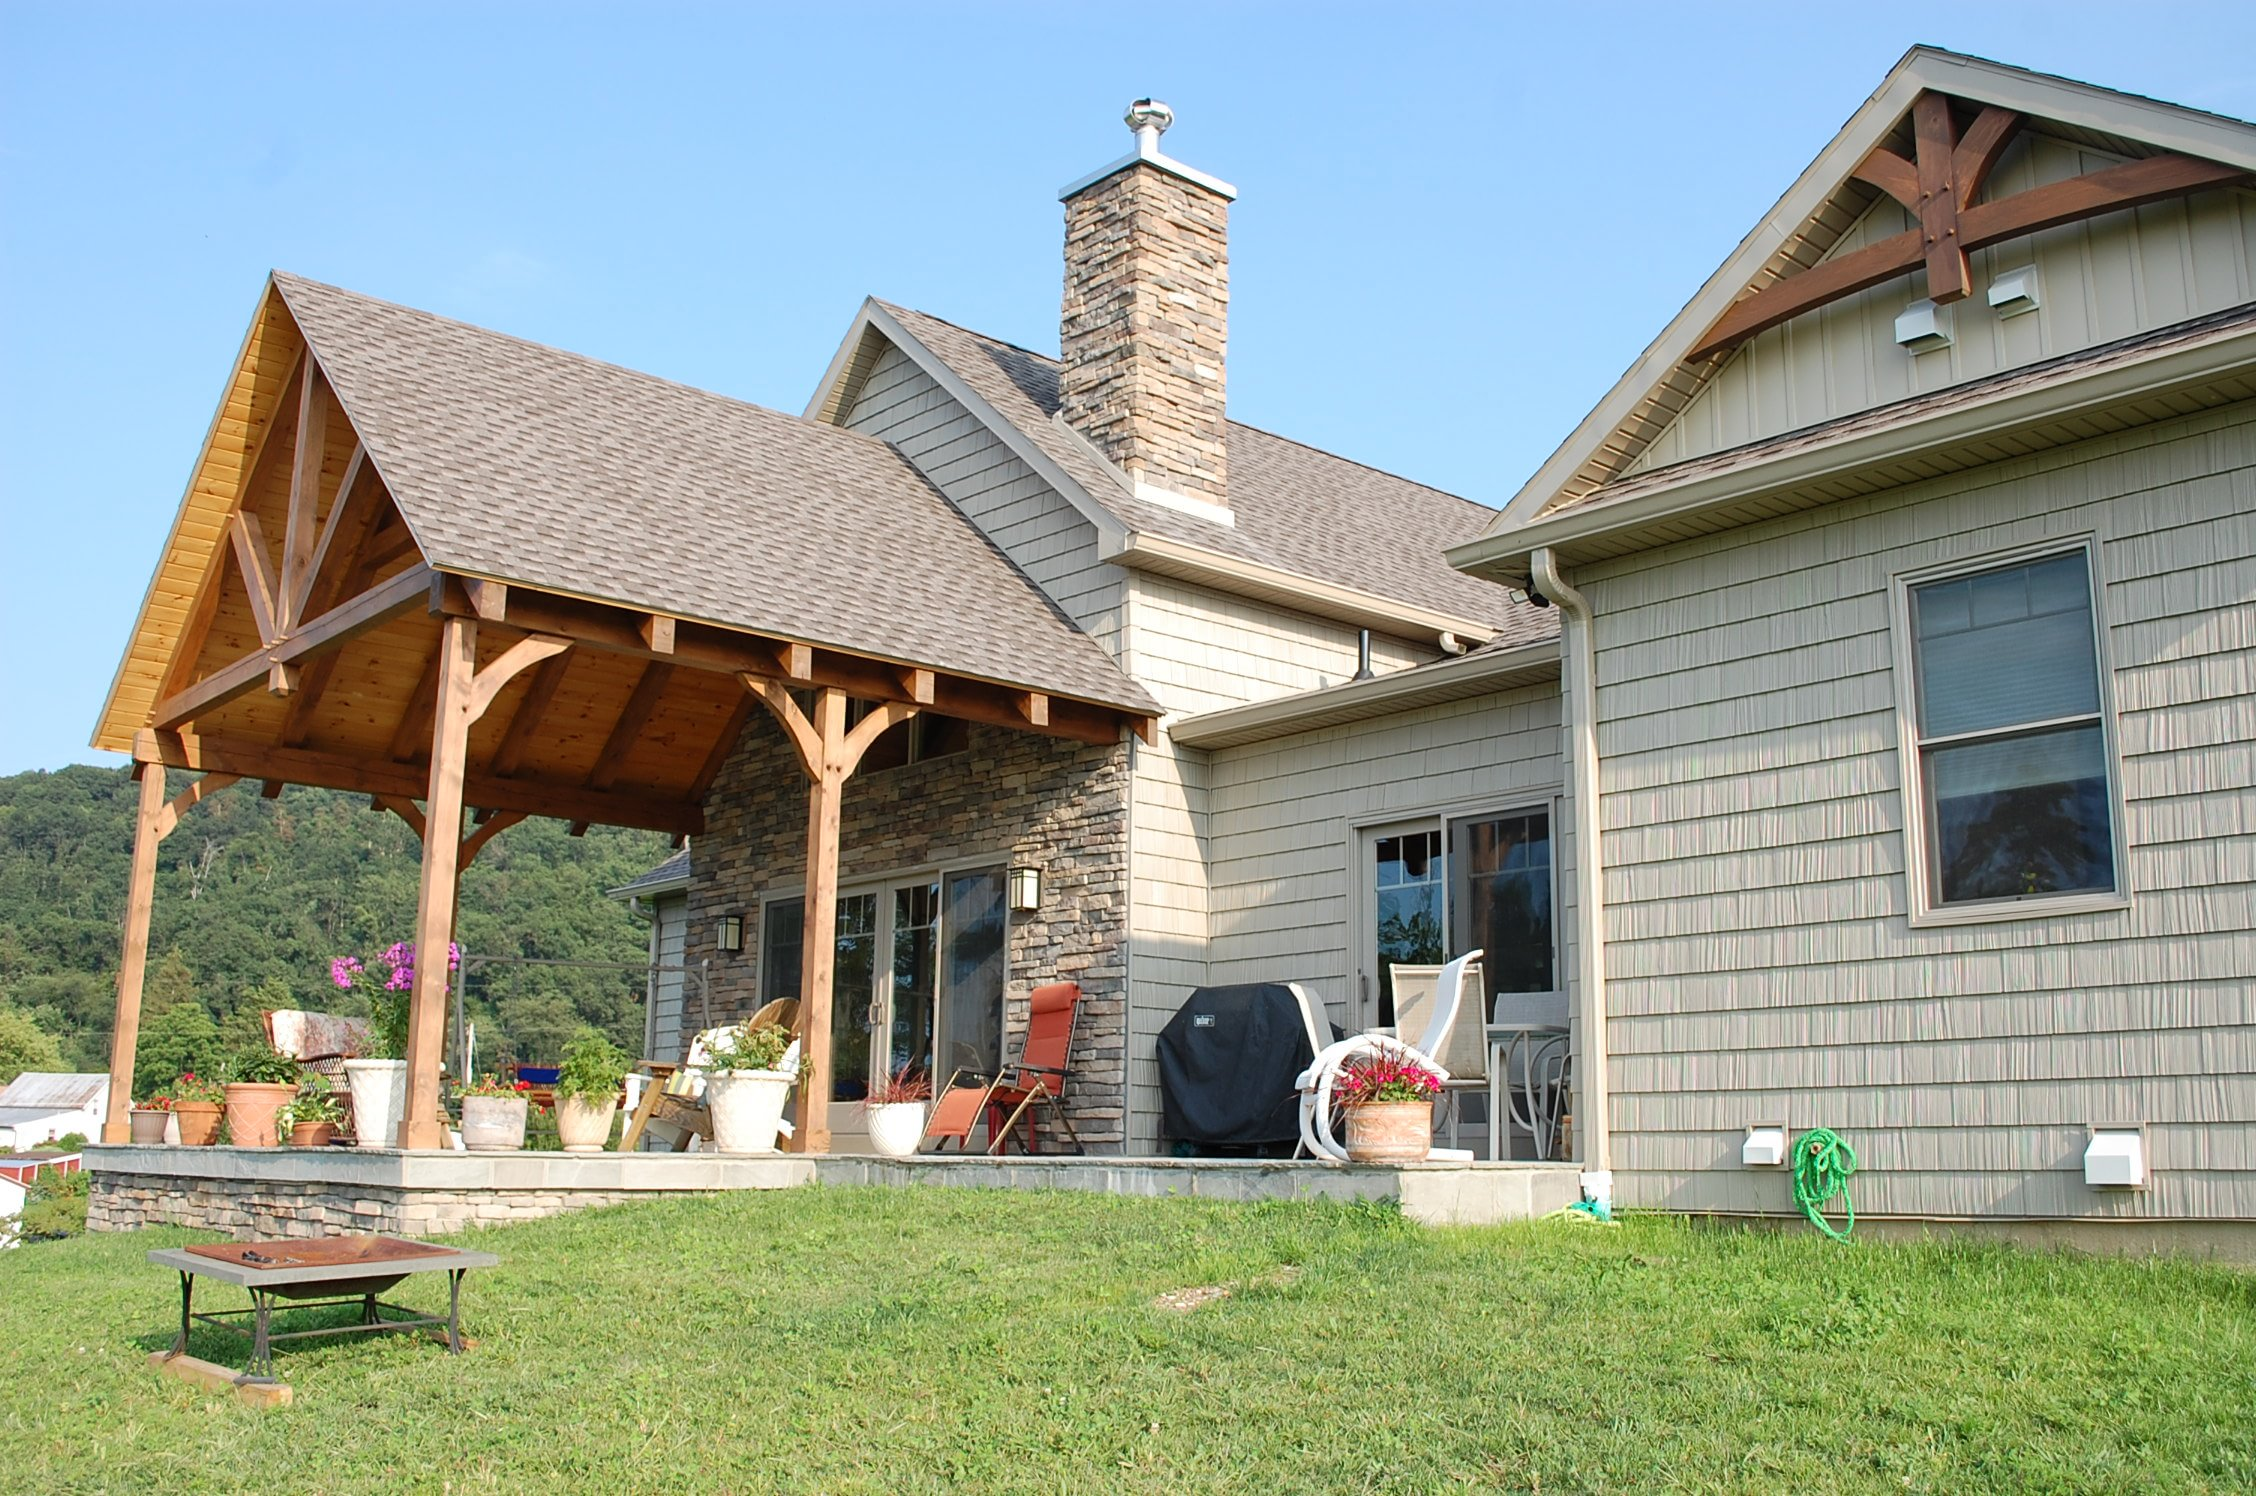 Covered patio on Timber frame in Smithsburg, MD built by Mt. Tabor Builders